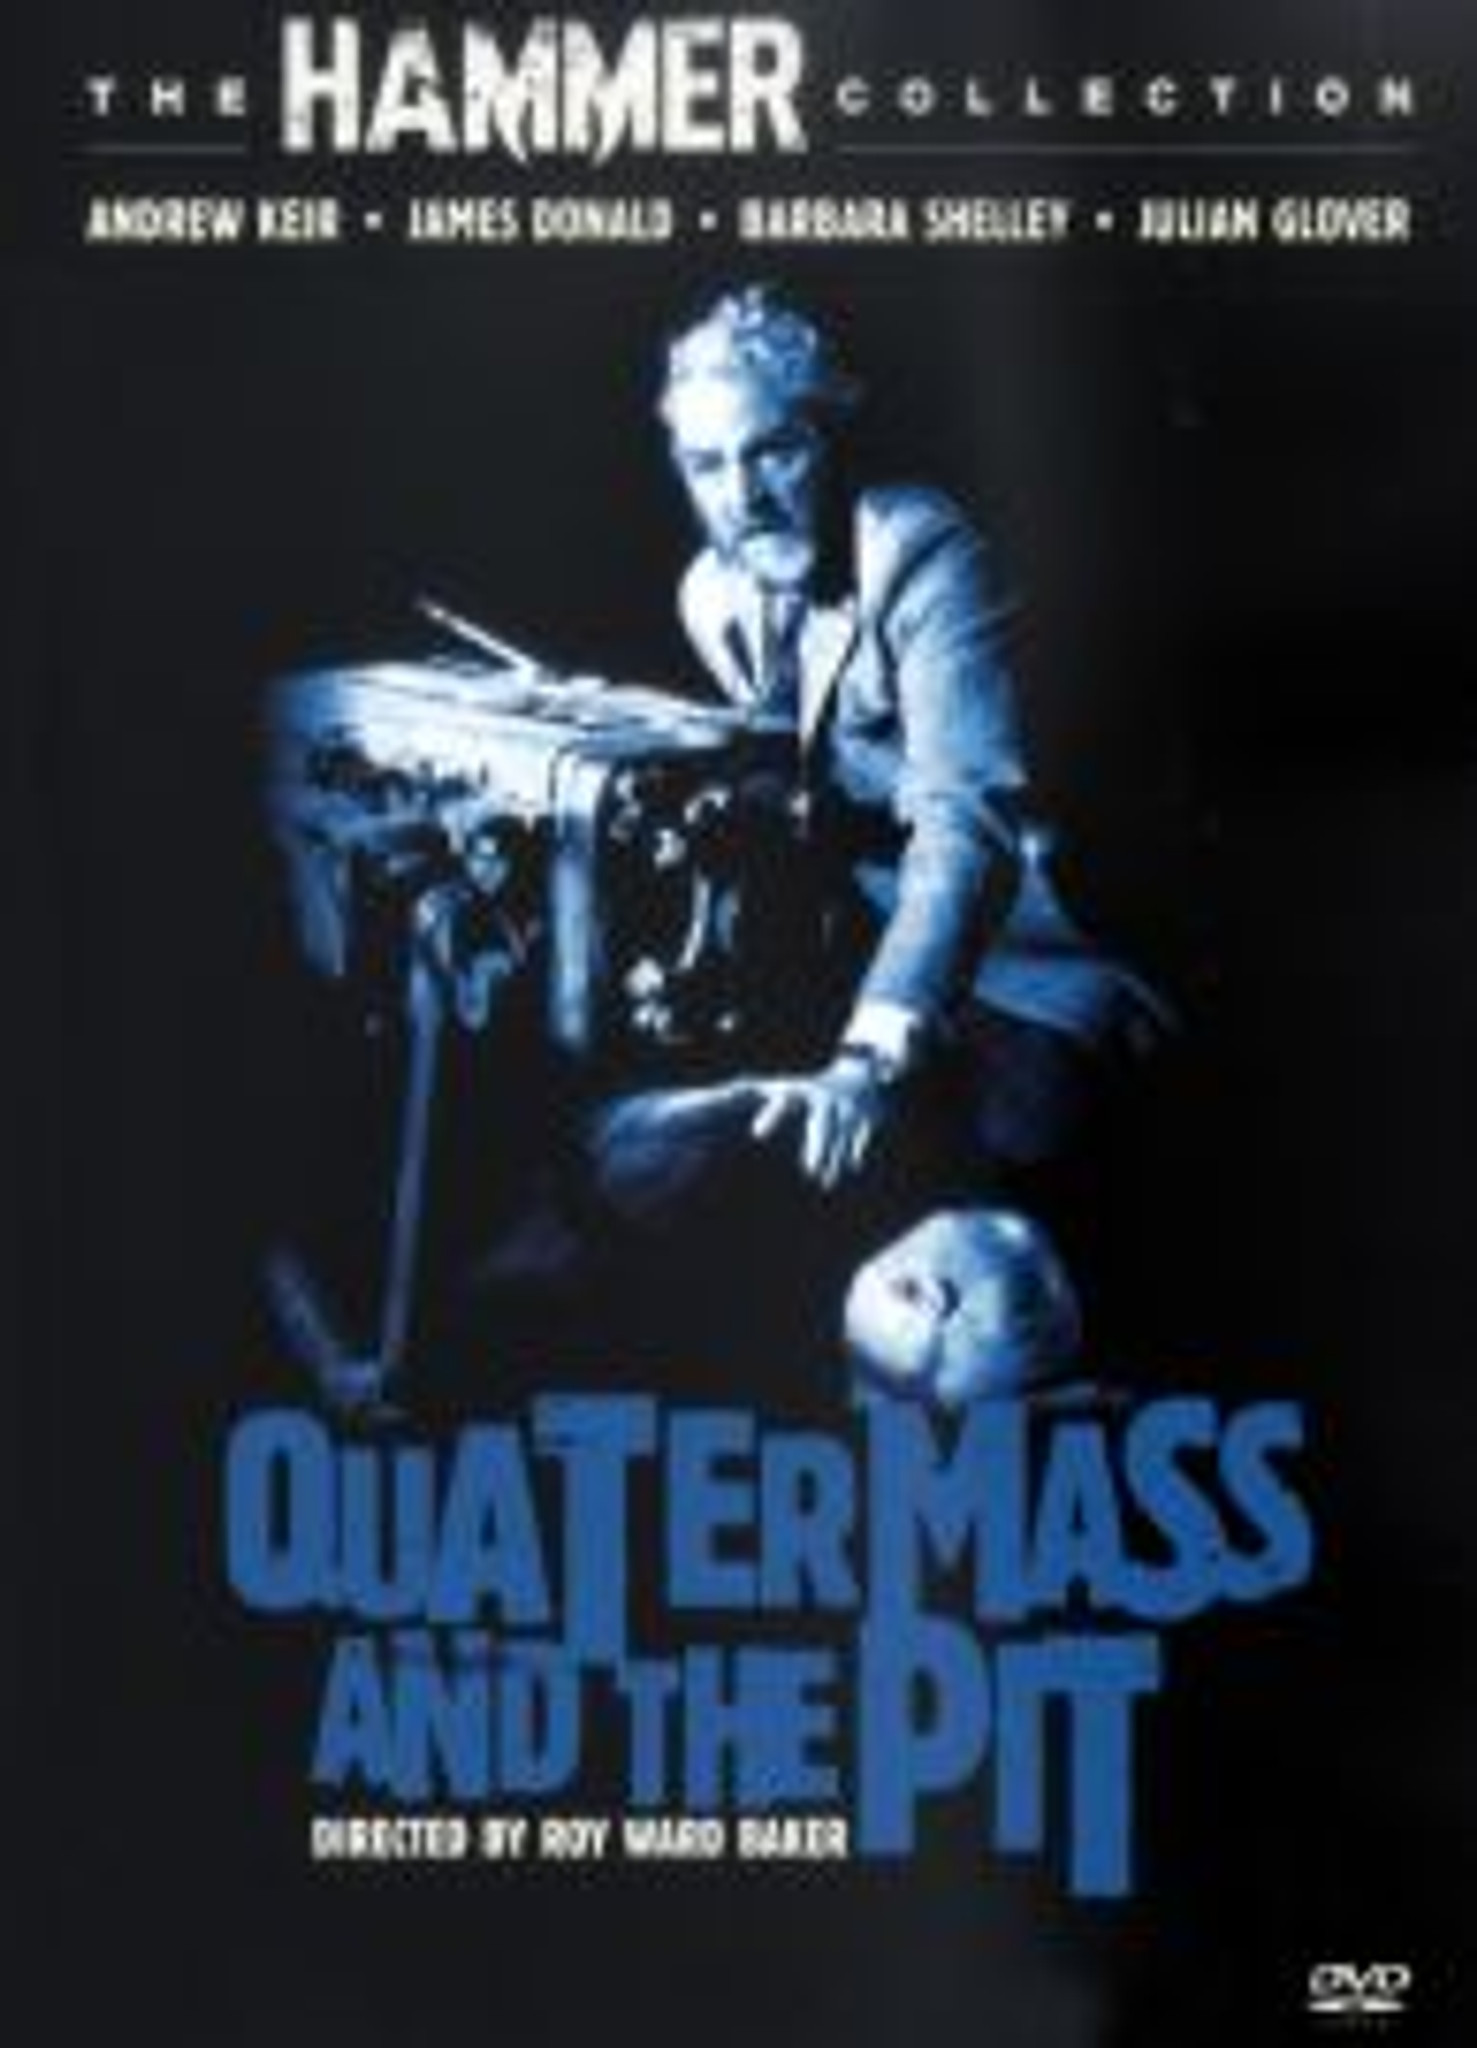 Quatermass and the Pit James Donald Dvd